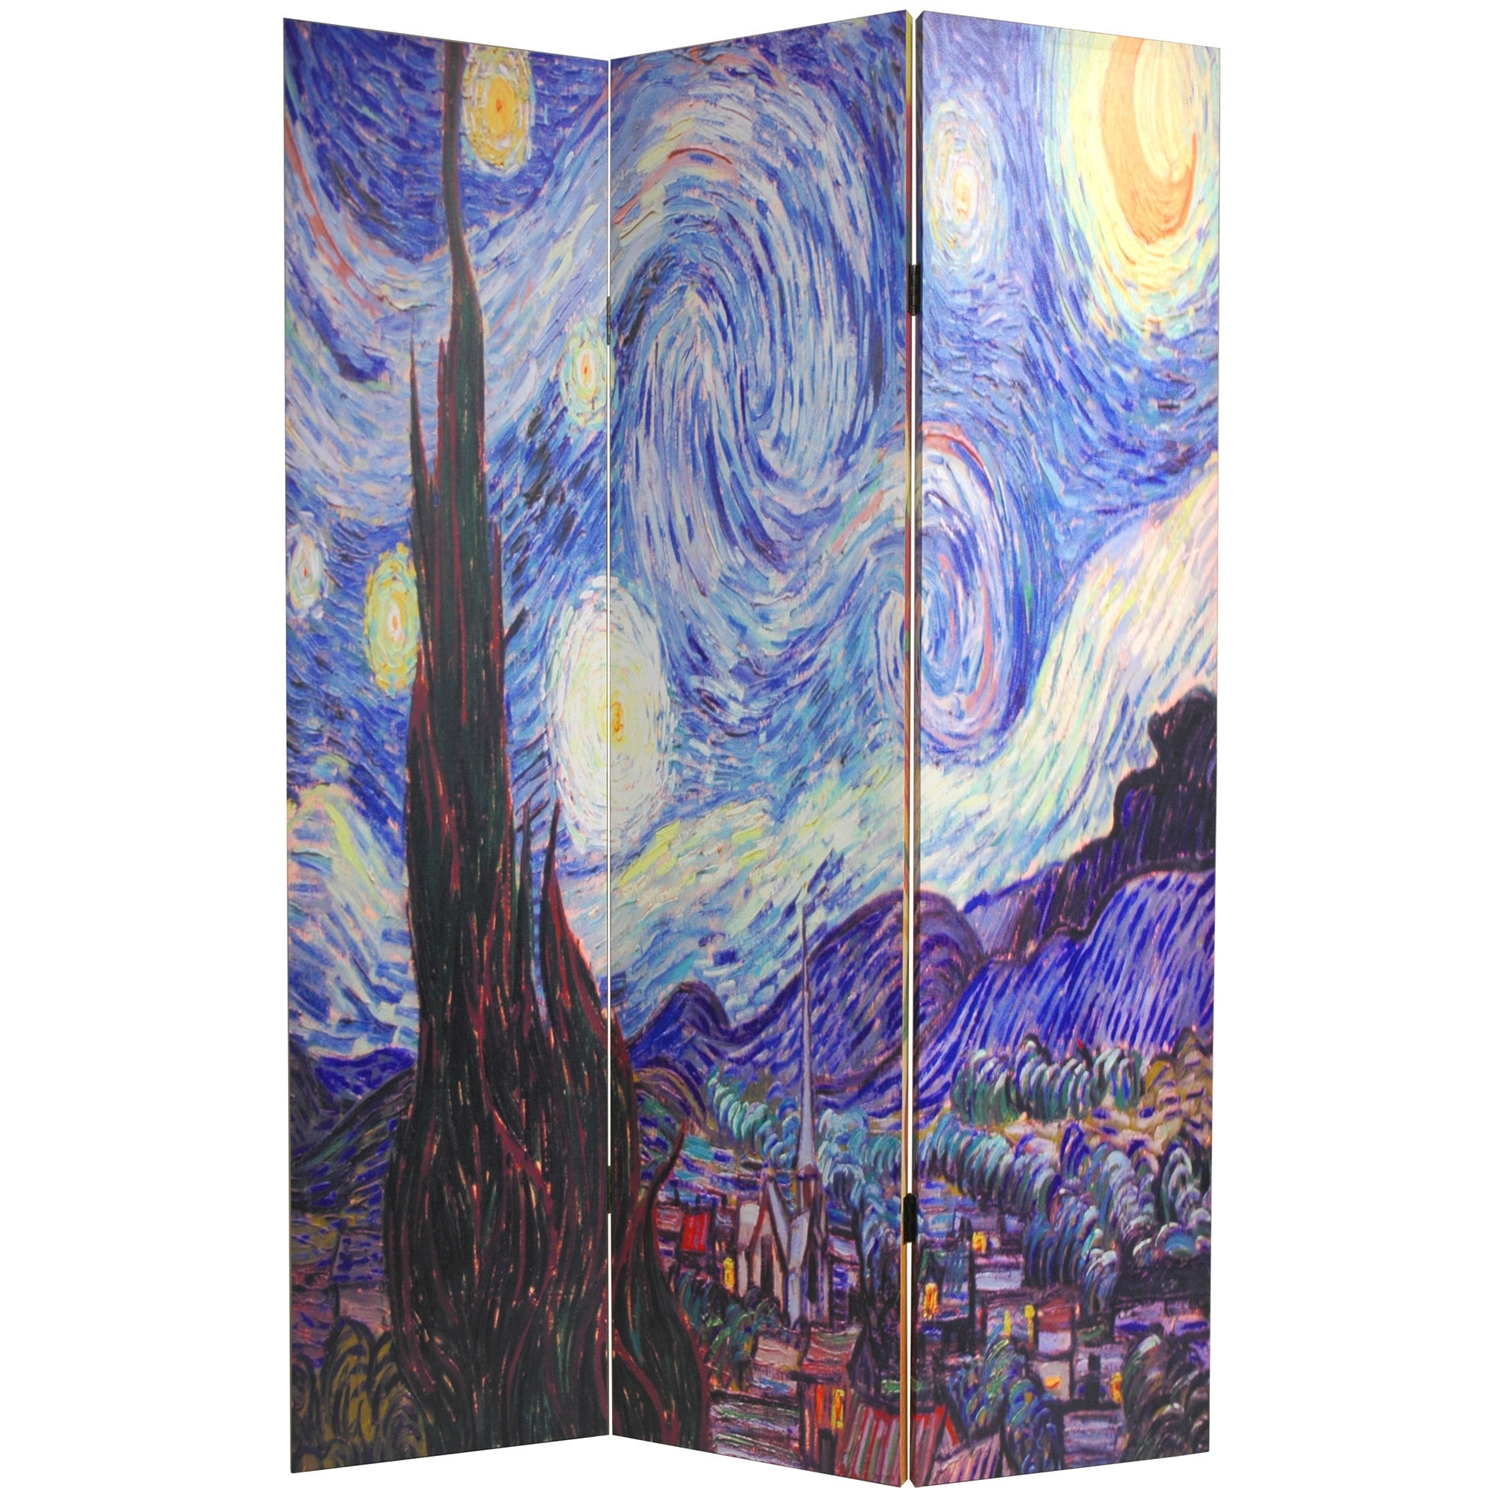 "Double Sided 3-Panel Room Divider with Van Gogh Starry Night & Sunflowers, WVGRD1045594 :  This Double Sided 3-Panel Room Divider with Van Gogh Starry Night & Sunflowers is a unique folding floor screen, bursting with strong colors and interesting shapes, a reproduction of a photograph of part of Van Gogh's ""Starry Night"" on one side and ""Sunflowers"" on the other--bright, powerful images, printed onto a limited number of portable, durable, 3 panel canvas room dividers. An artistic, decorative accent, and a great way to introduce rich colors into spare modern interior design and décor--funky, contemporary--as well as a practical, effective, folding floor screen.  Material: Reinforced spruce wood; Hardy, kiln dried wood;     It is covered top to bottom, front and back, and on the edges, with stretched poly-cotton blend canvas; Printed with a high saturation ink to create a beautiful, long lasting image; Almost, entirely opaque very little light can pass through the double layer of canvas, offering complete privacy; Very tough and durable, yet light and portable; Great for dividing space, providing privacy, hiding unsightly areas or equipment, background for plants or sculptures, or defining a cozy space. Product Type: Folding; Primary Material Details: Polyester/cotton blended canvas; Assembly Required: No; Style: Art print; Theme: Vintage; Color: Multi-colored; Hardware Finish: Lacquered Brass; Country of Manufacture: China."